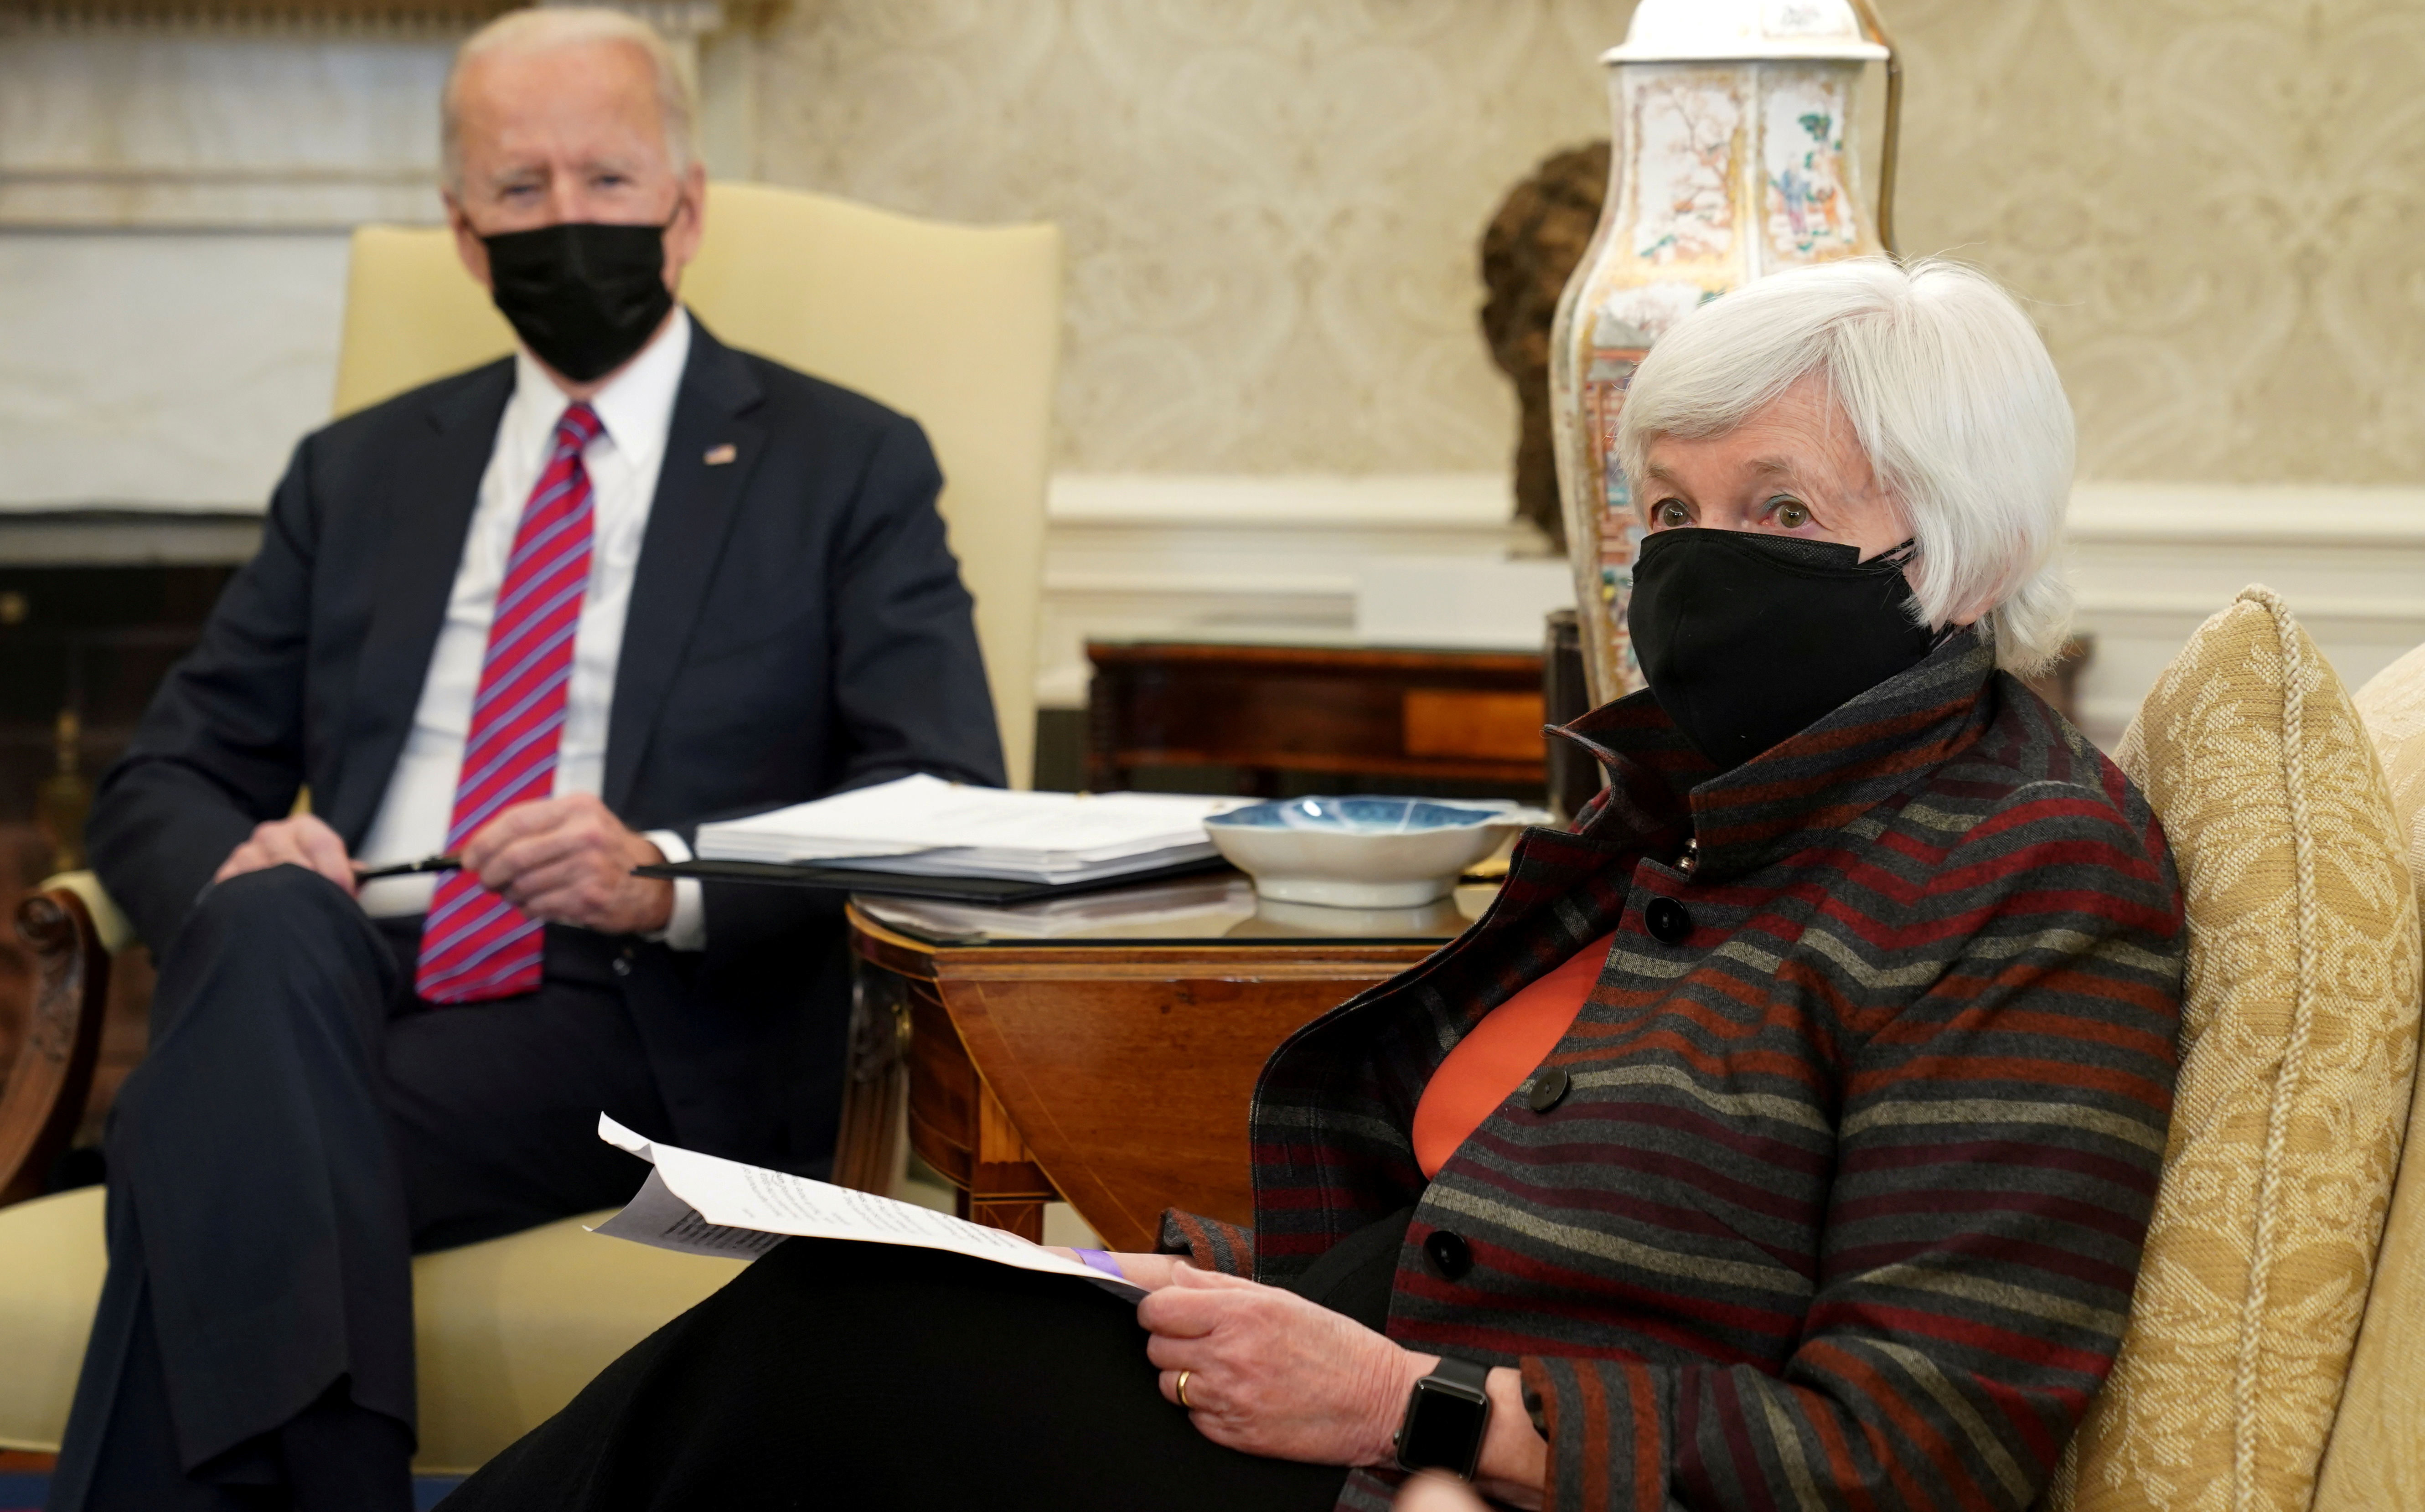 U.S. President Joe Biden meets with Treasury Secretary Janet Yellen in the Oval Office at the White House in Washington, U.S., January 29, 2021. REUTERS/Kevin Lamarque